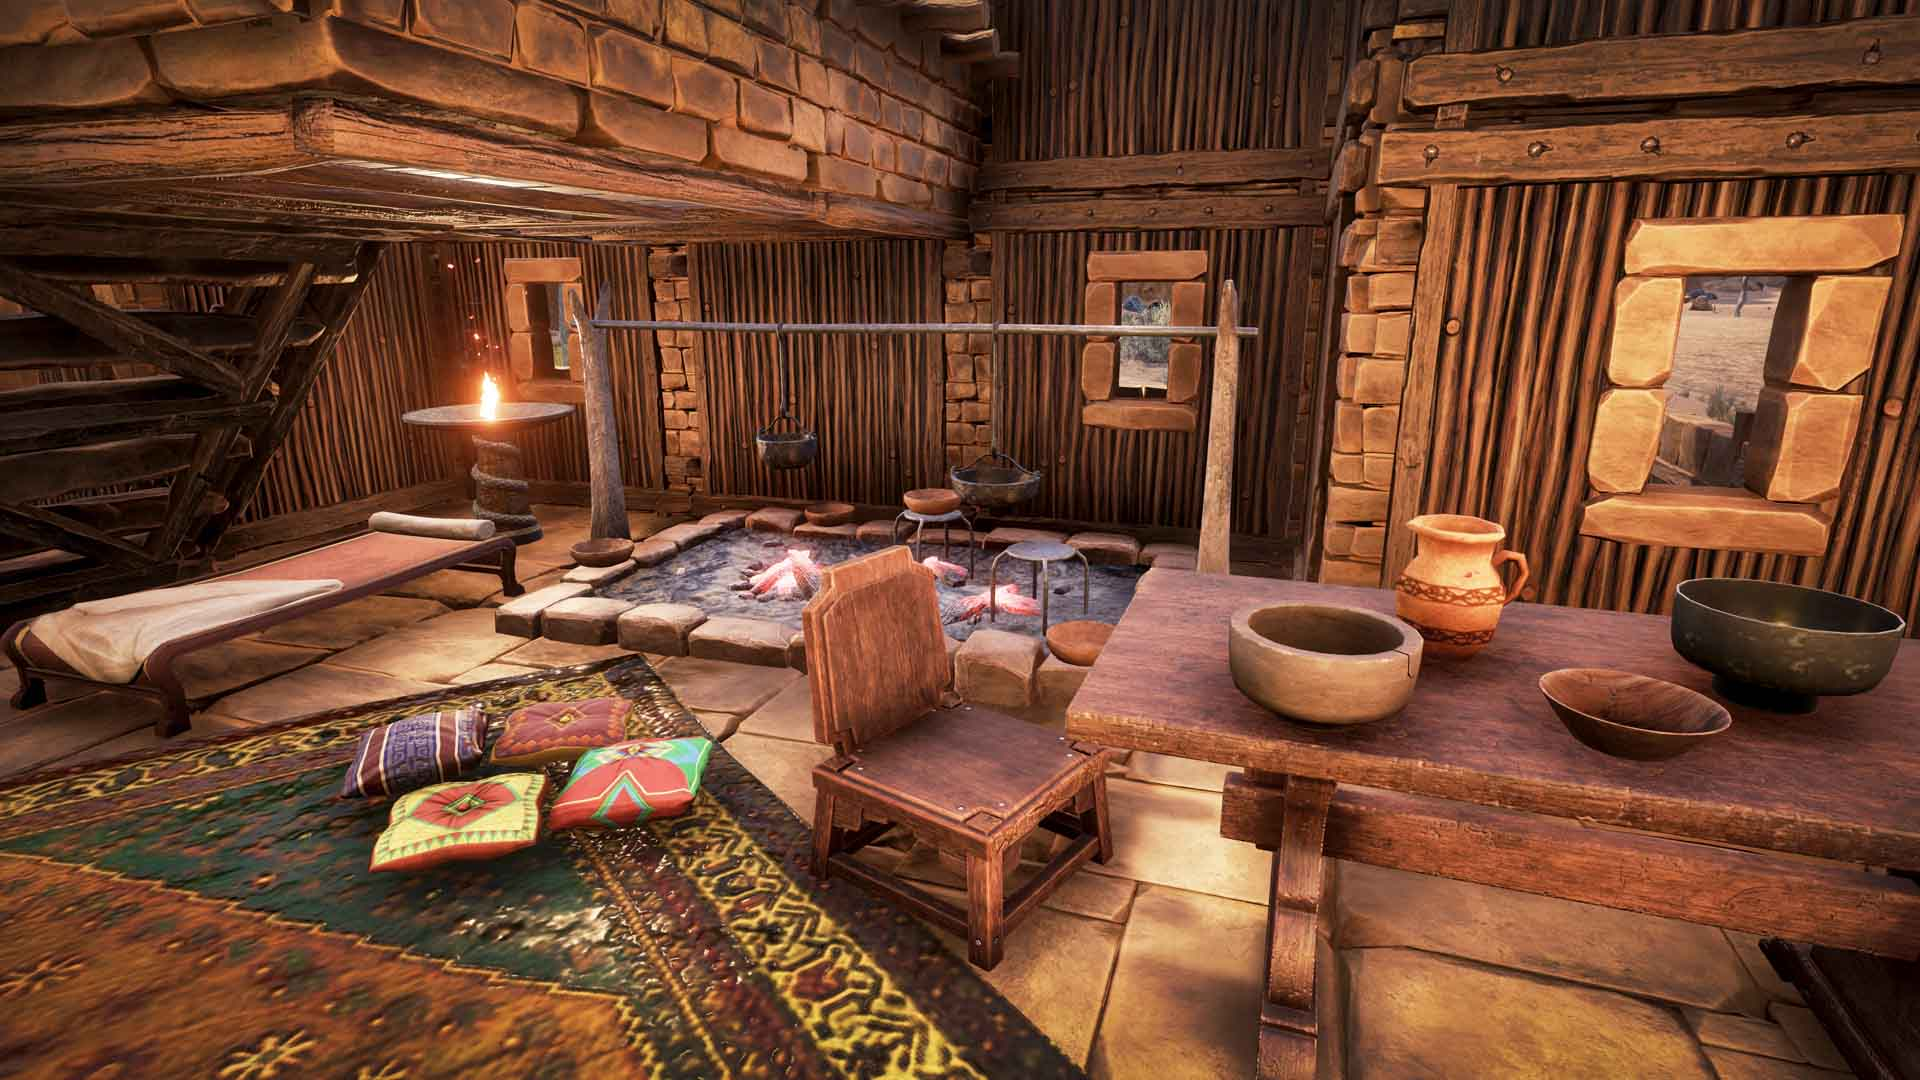 Conan Exiles Update 26 Decorate Deceive